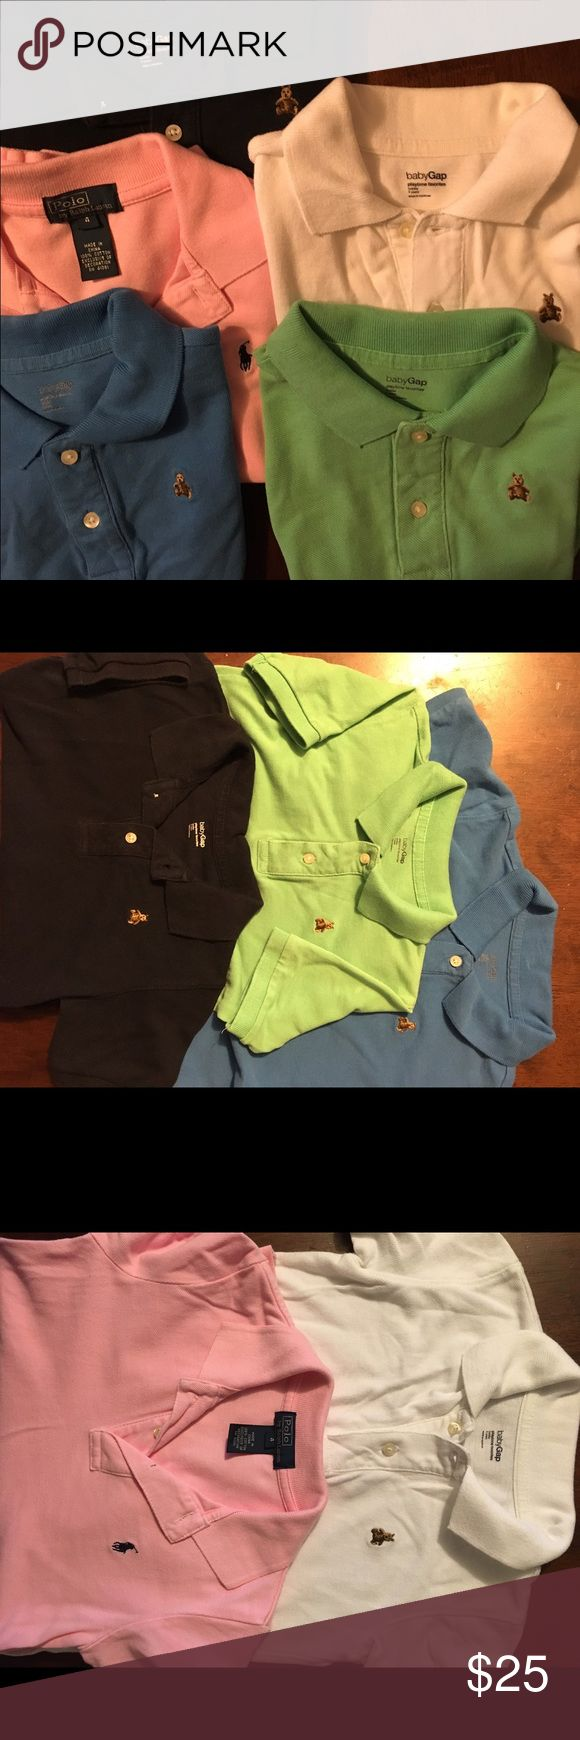 5 polo baby gap/Ralph Lauren shirts (size 5) Selling my son's polo style shirts that he has outgrown. All were purchased from gap/Macy's (Ralph Lauren) and not from an outlet. Normal fade/wash wear but in EUC w/o stains. Gap shirts (size 5)  are navy, royal blue, white, and Kelly green. The Ralph Lauren shirt is pink (size 4) with a navy horse embroidery. The gap shirts all have the brown teddy bear embroidery. Other items for sale that mix/match so bundle and save on shipping. GAP Shirts…